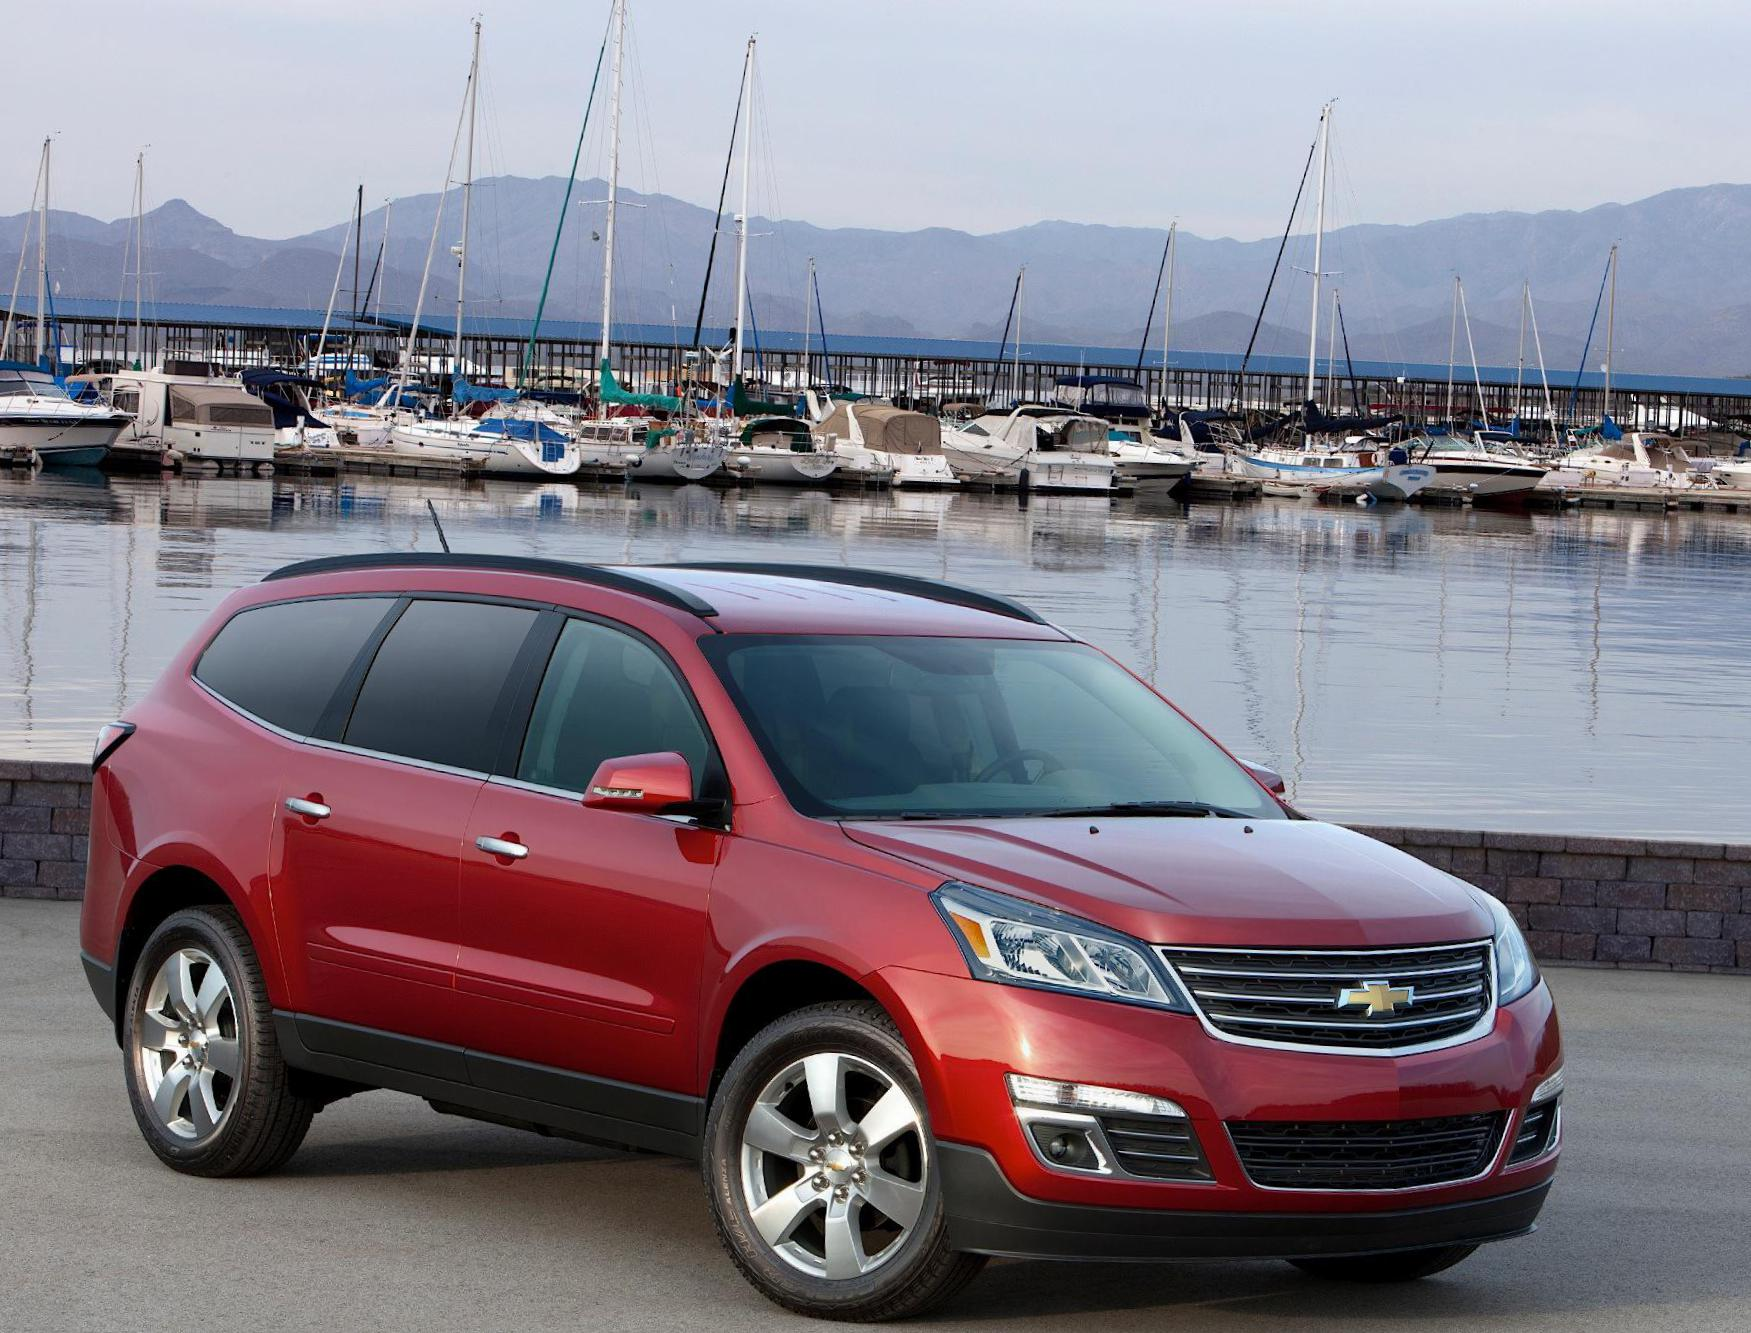 Chevrolet Traverse spec cabriolet